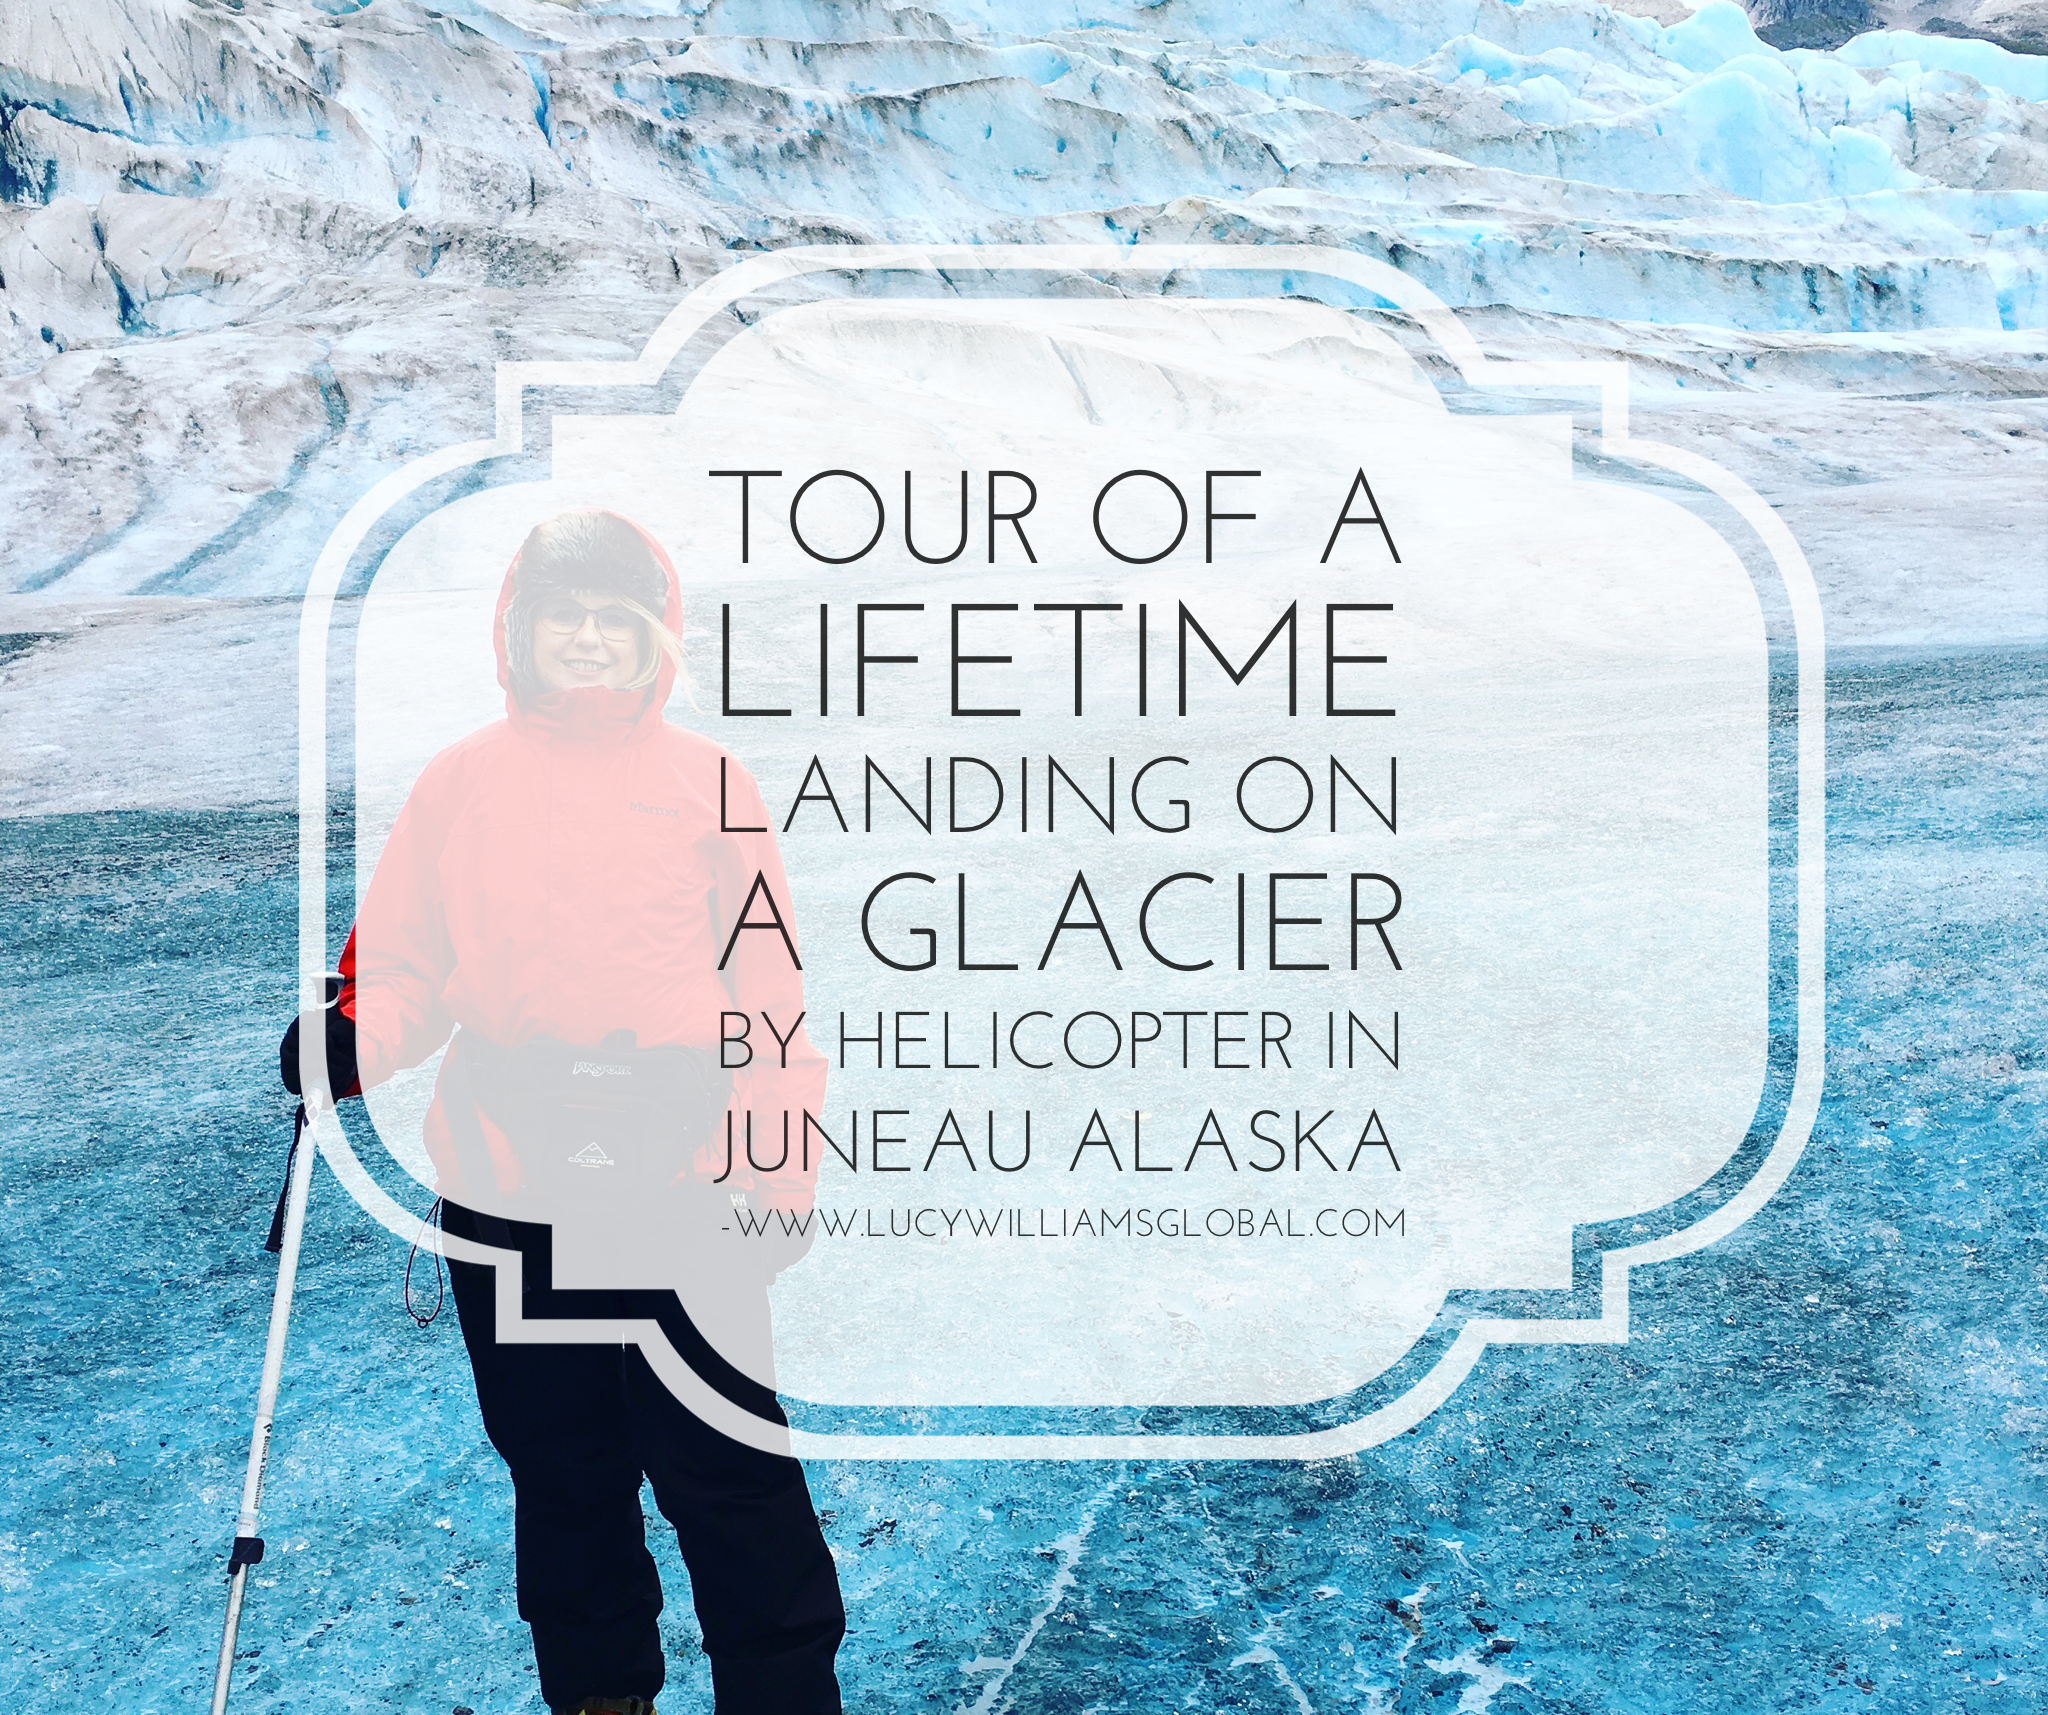 tour of a lifetime landing on a glacier by helicopter in Juneau Alaska